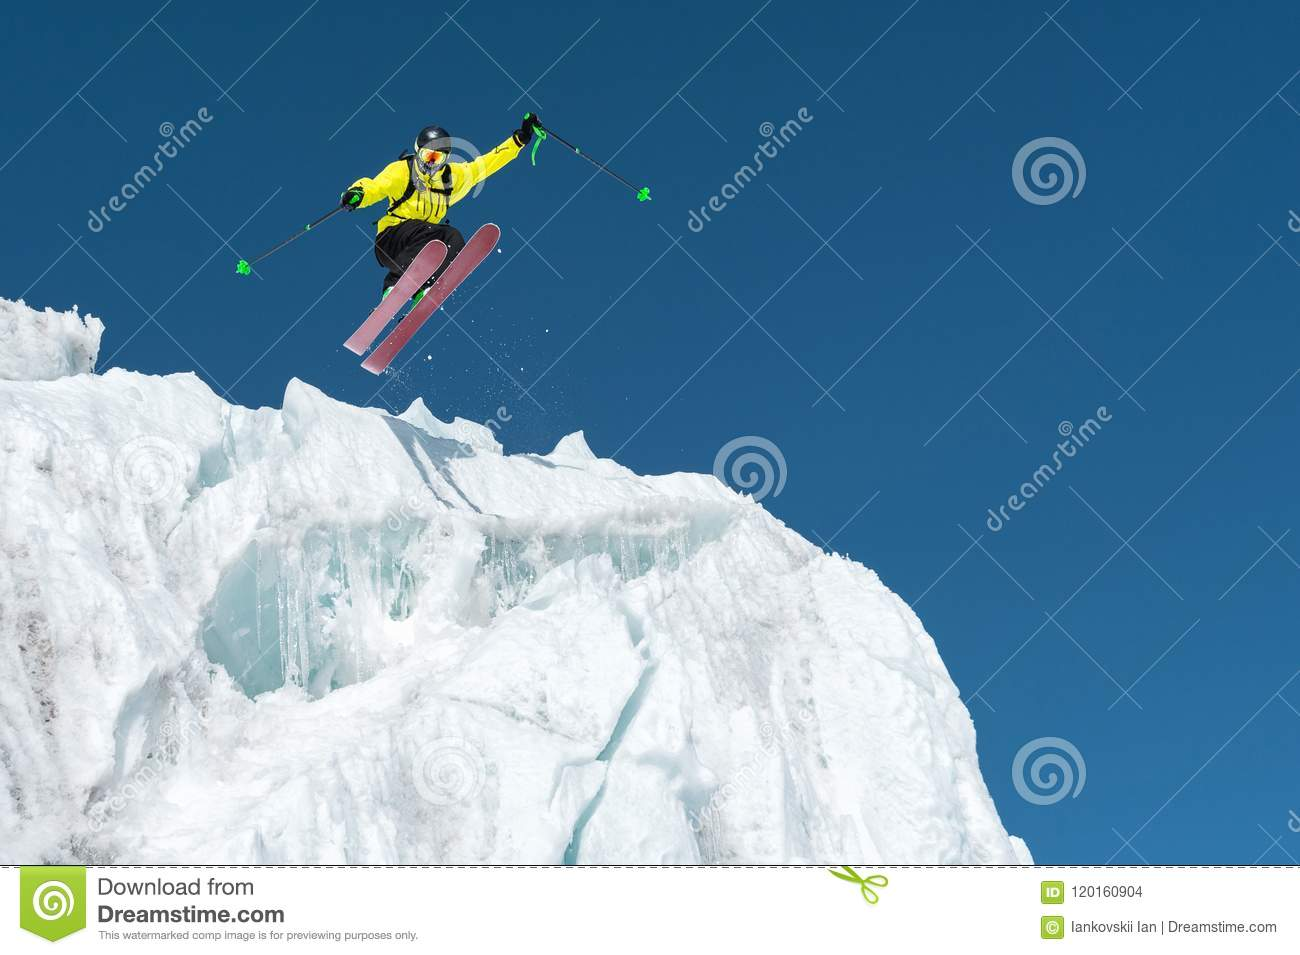 A jumping skier jumping from a glacier against a blue sky high in the mountains. Professional skiing